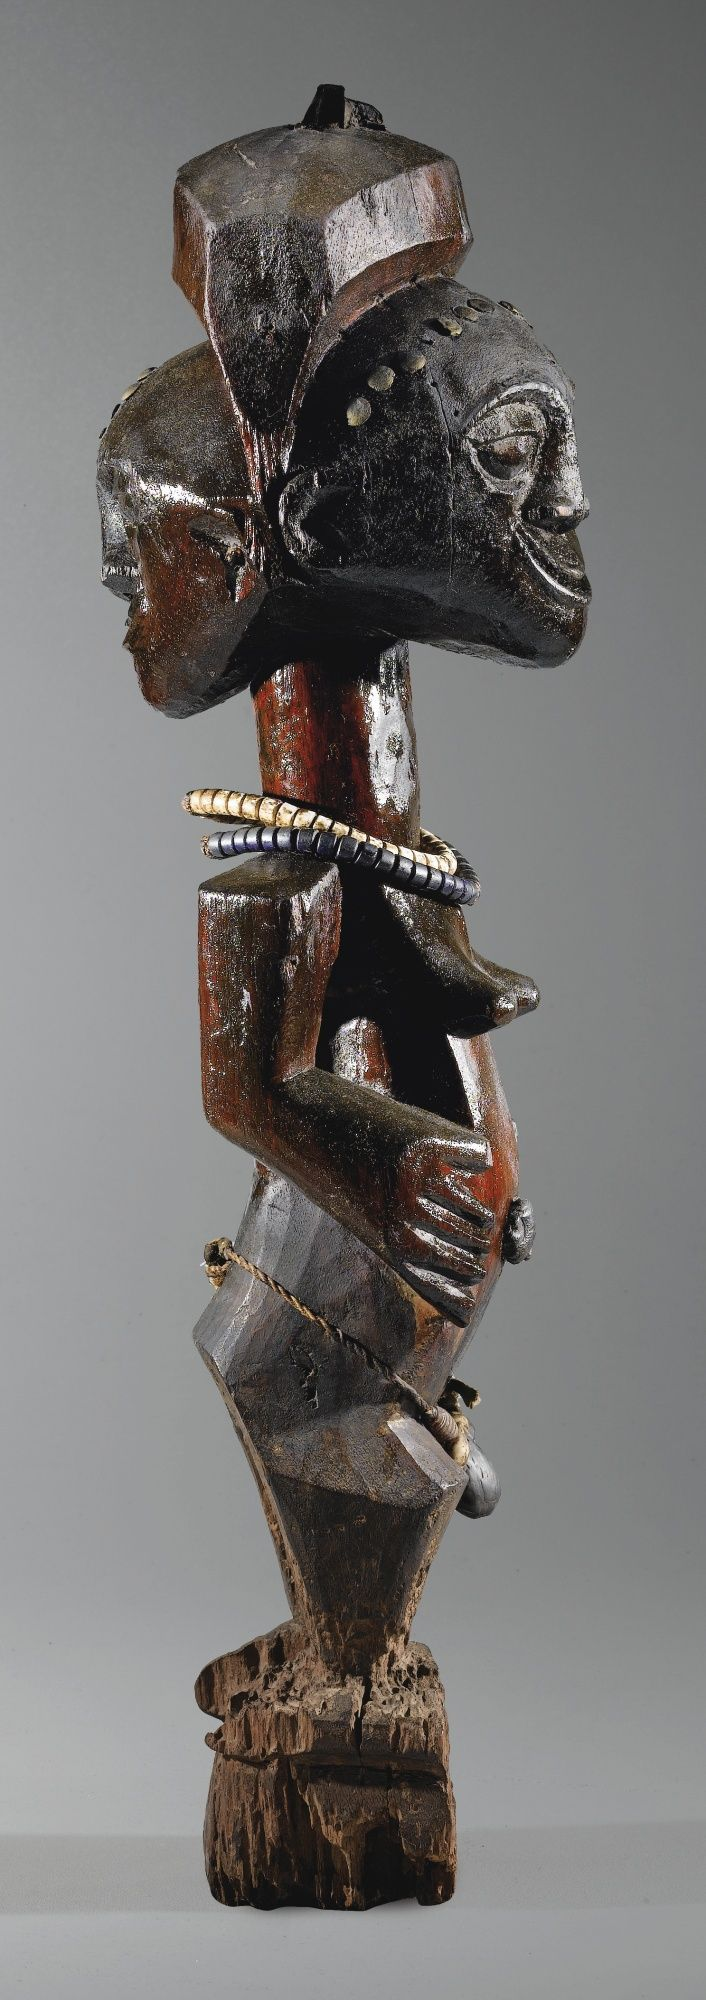 Africa   Janus form figure from the Songye people of DR Congo   Carved from reddish wood with a frontal diadem made up in brass studs, a braided rope adorned with glass beads and a ritual agglomerate contained in a small seed bag serves as a belt.   2nd half of the 19th century